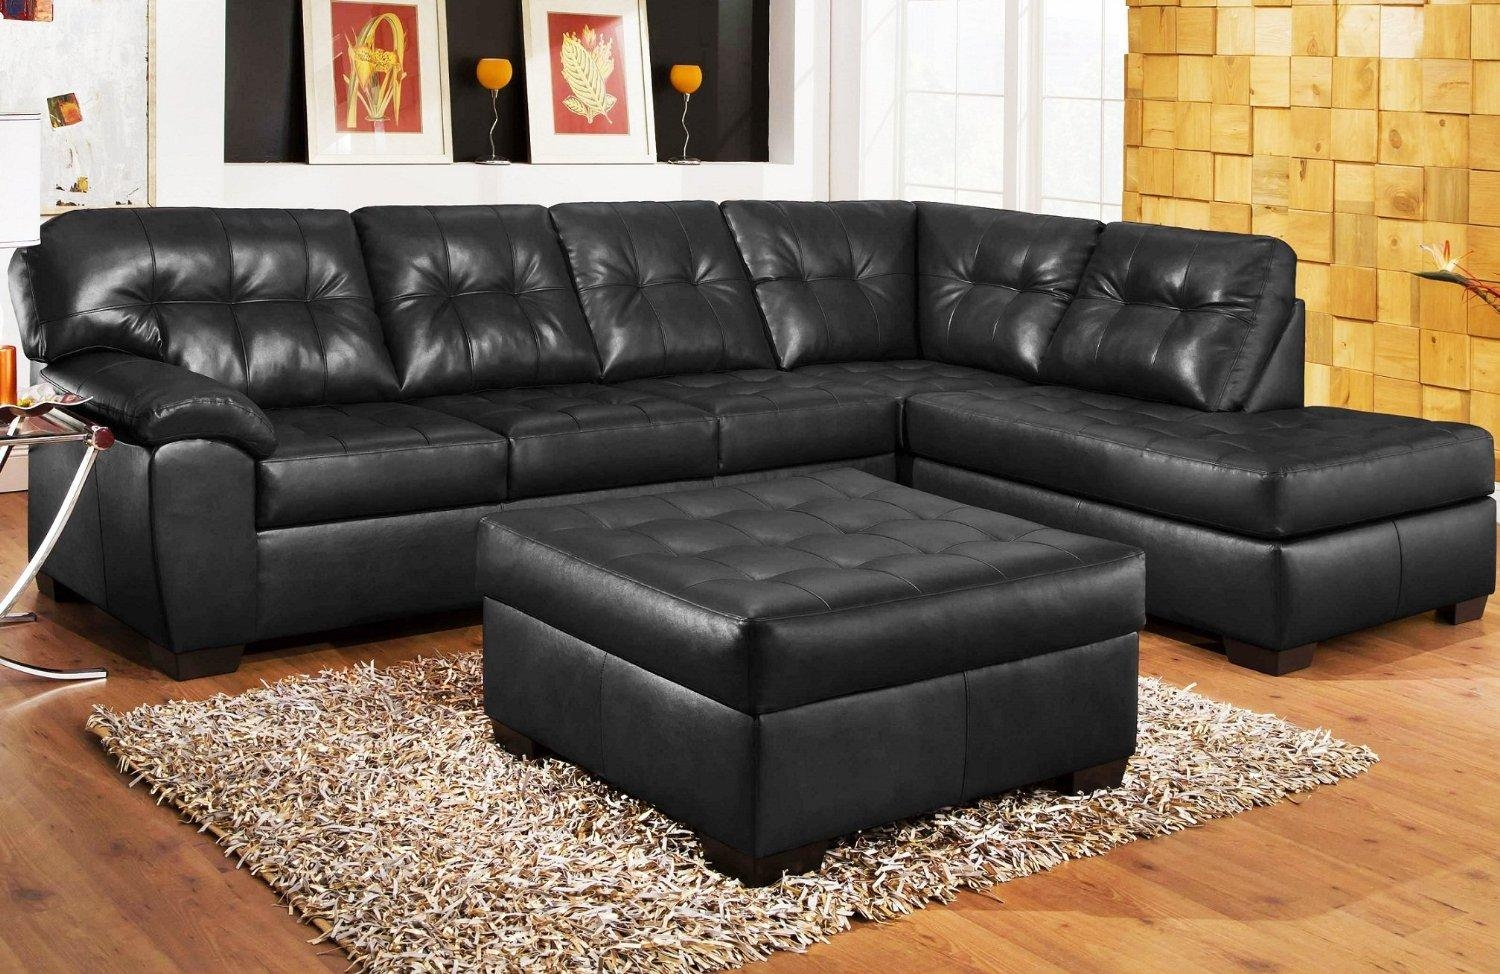 black sectional sofa room ideas camas homecenter 20 43 choices of small sofas